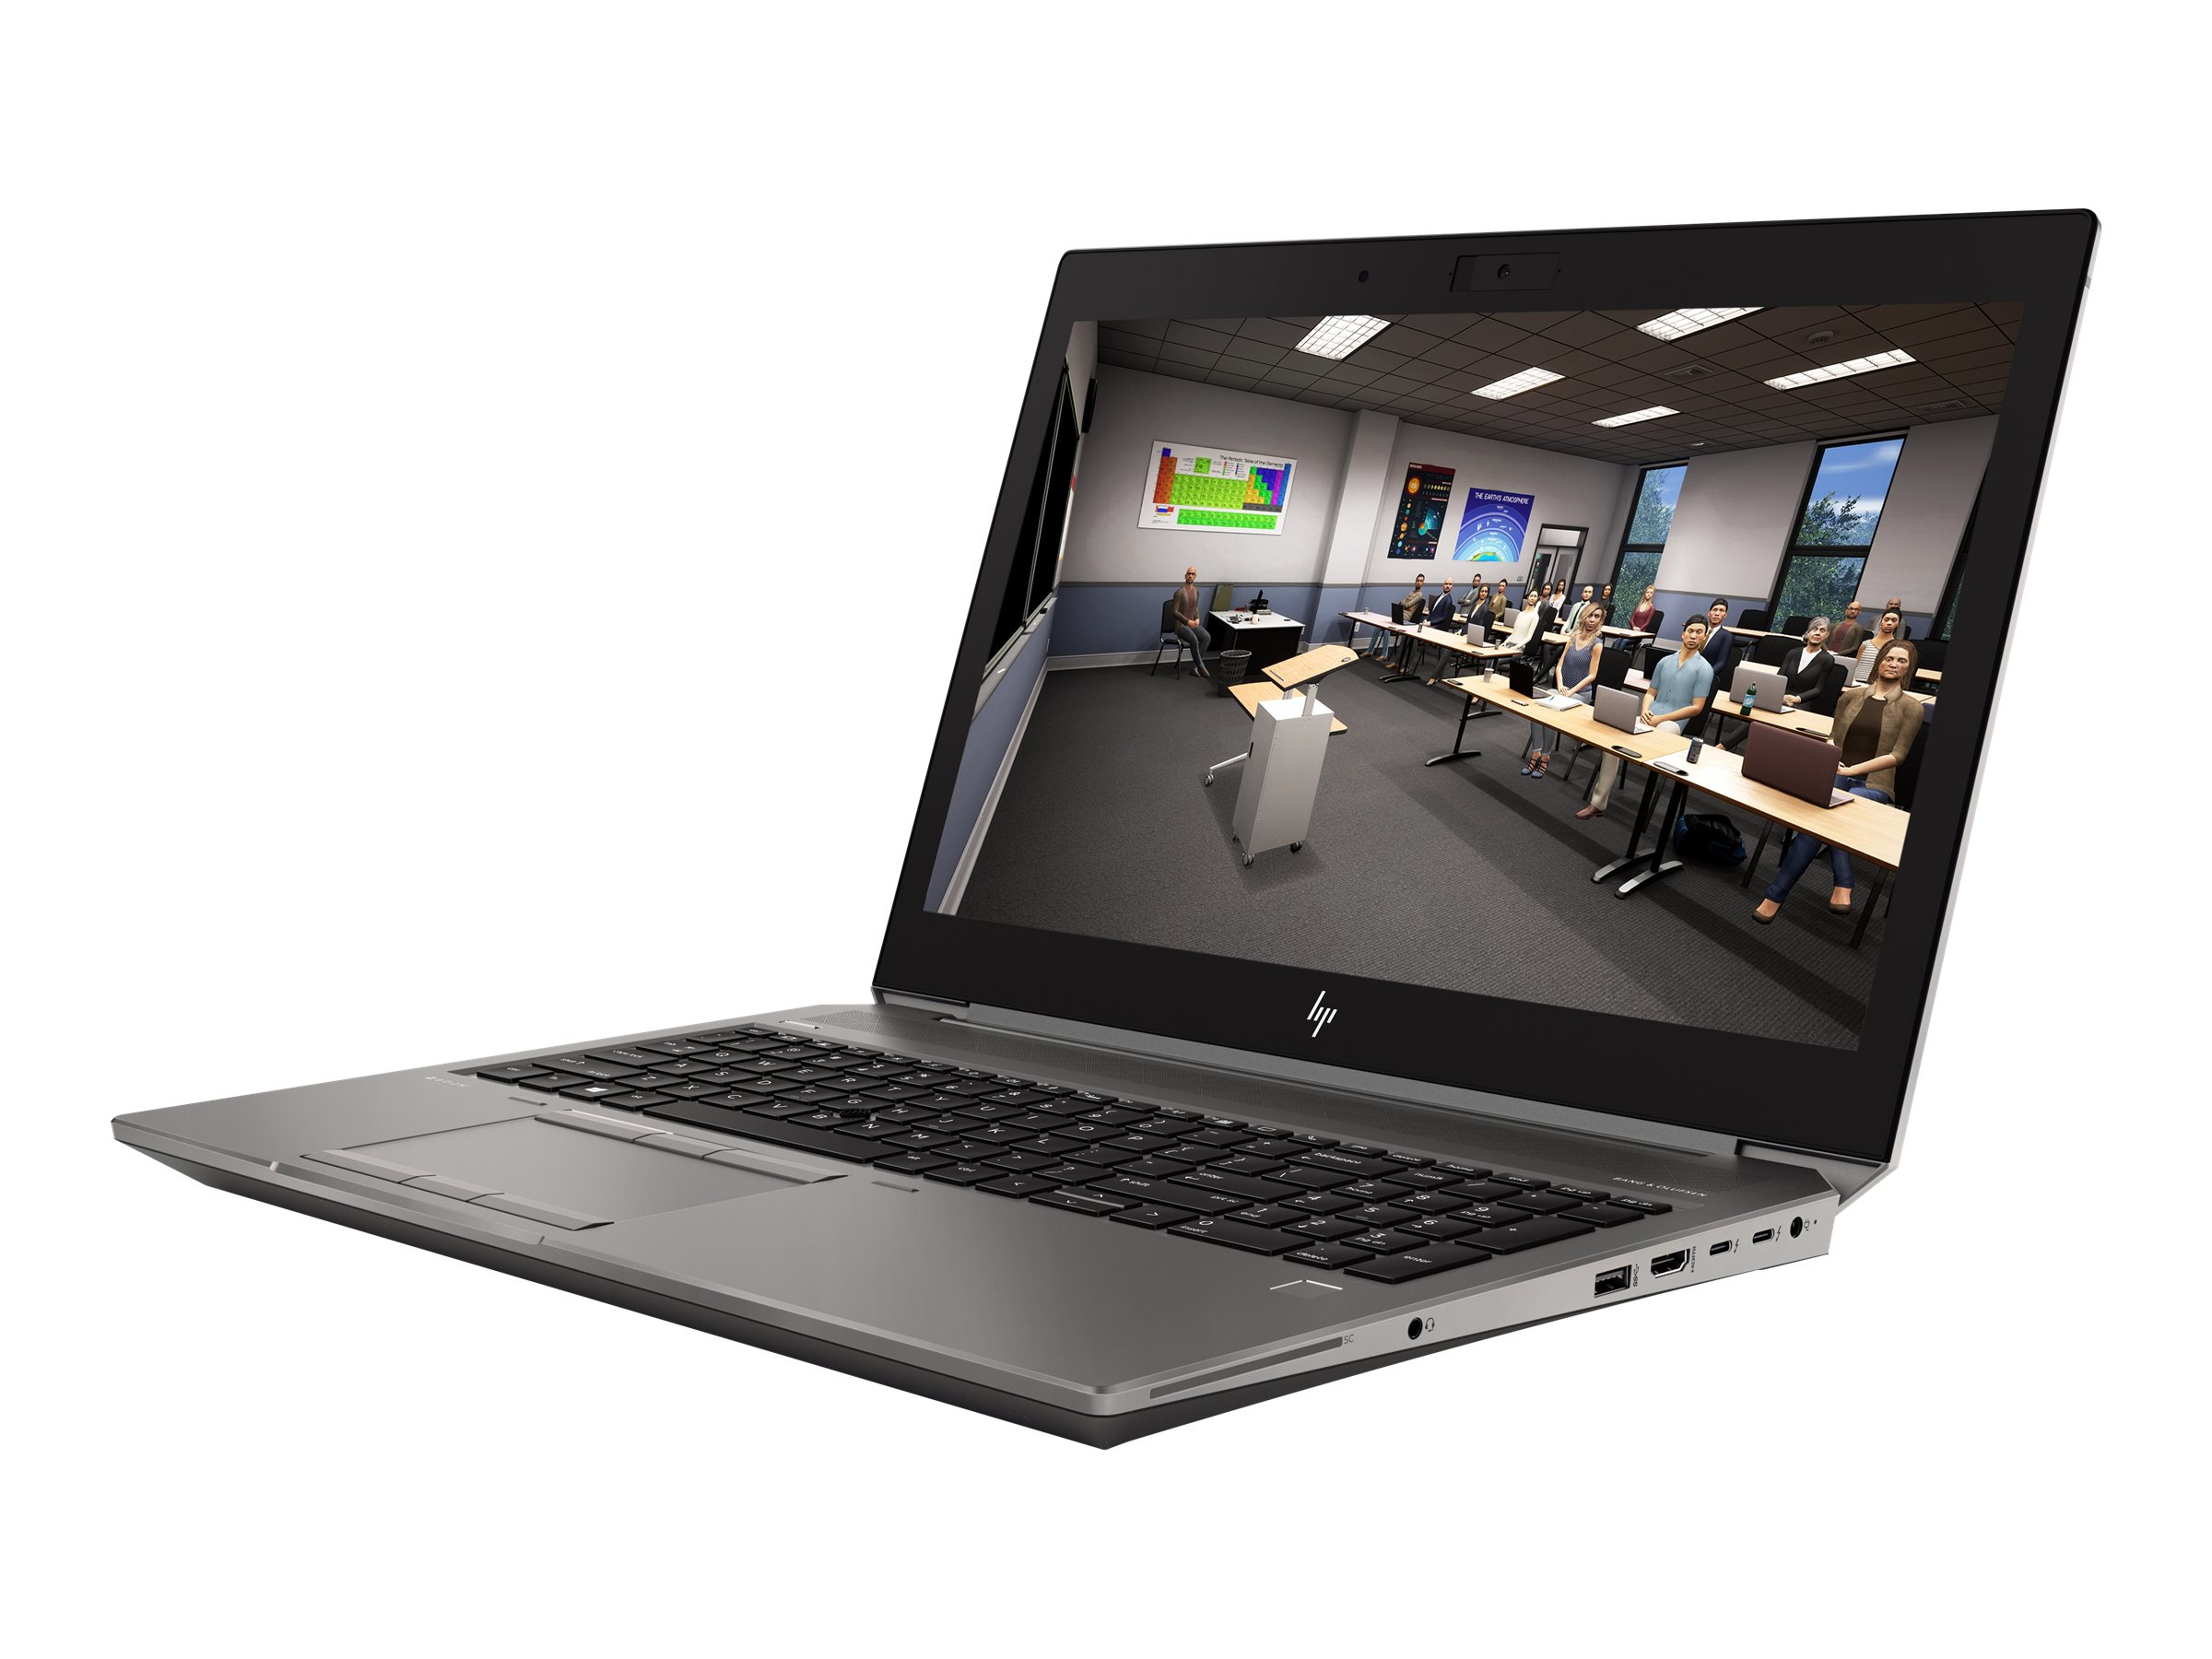 Hp zbook 15 g6 mobile workstation core i7 9750h 2 6 ghz win 10 pro 64 bit 8 gb ram 256 gb ssd 16 gb ssd cache nvme 39 6 cm 15 6 ips 1920 x 1080 full hd 11854183 6tr54ea abd